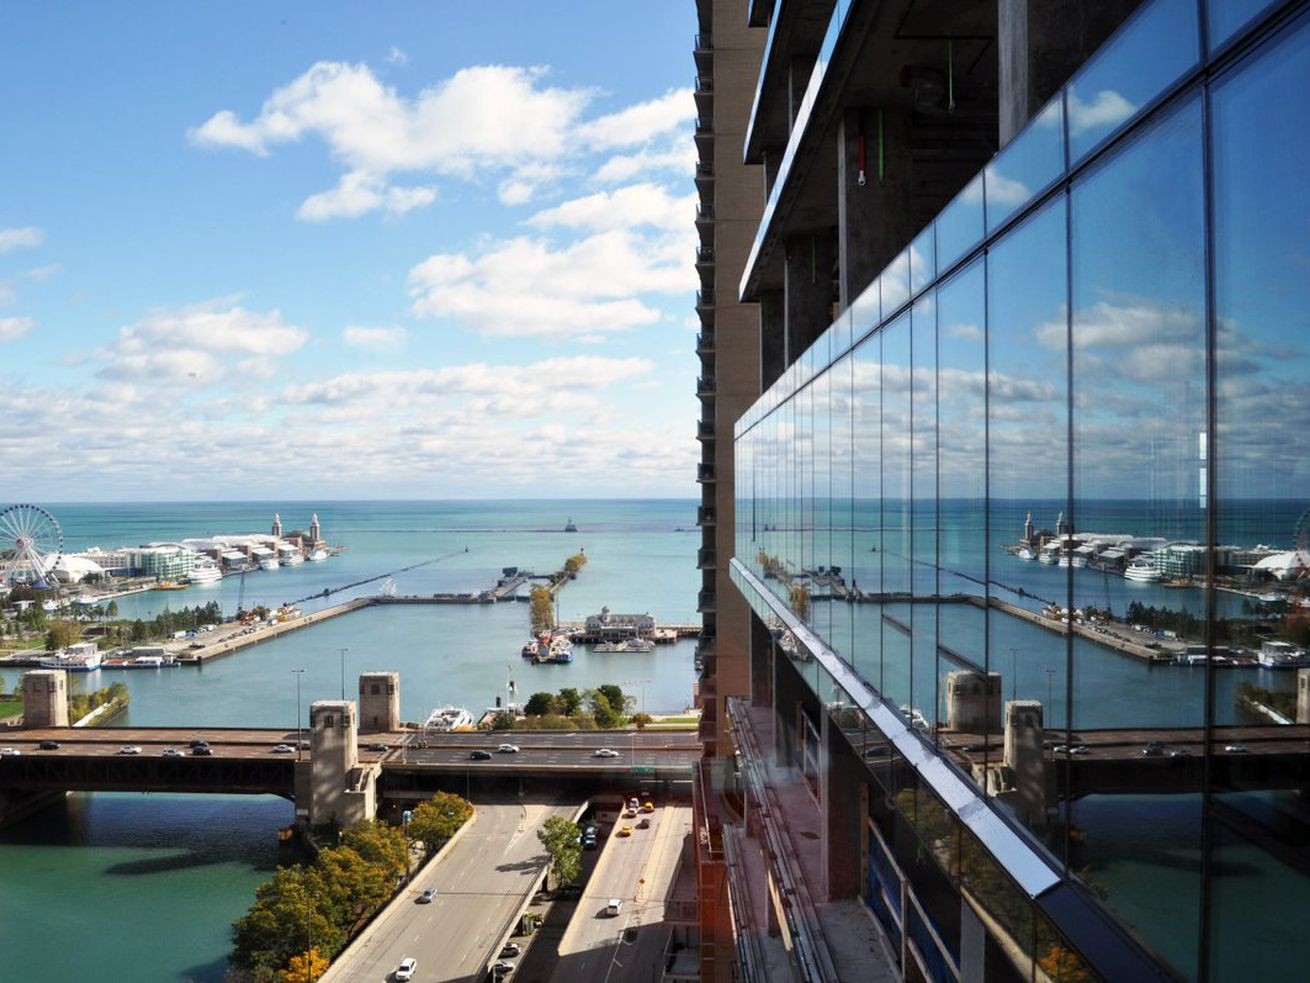 Vista's new glass capturing a crisp reflection of the Chicago River and Navy Pier.